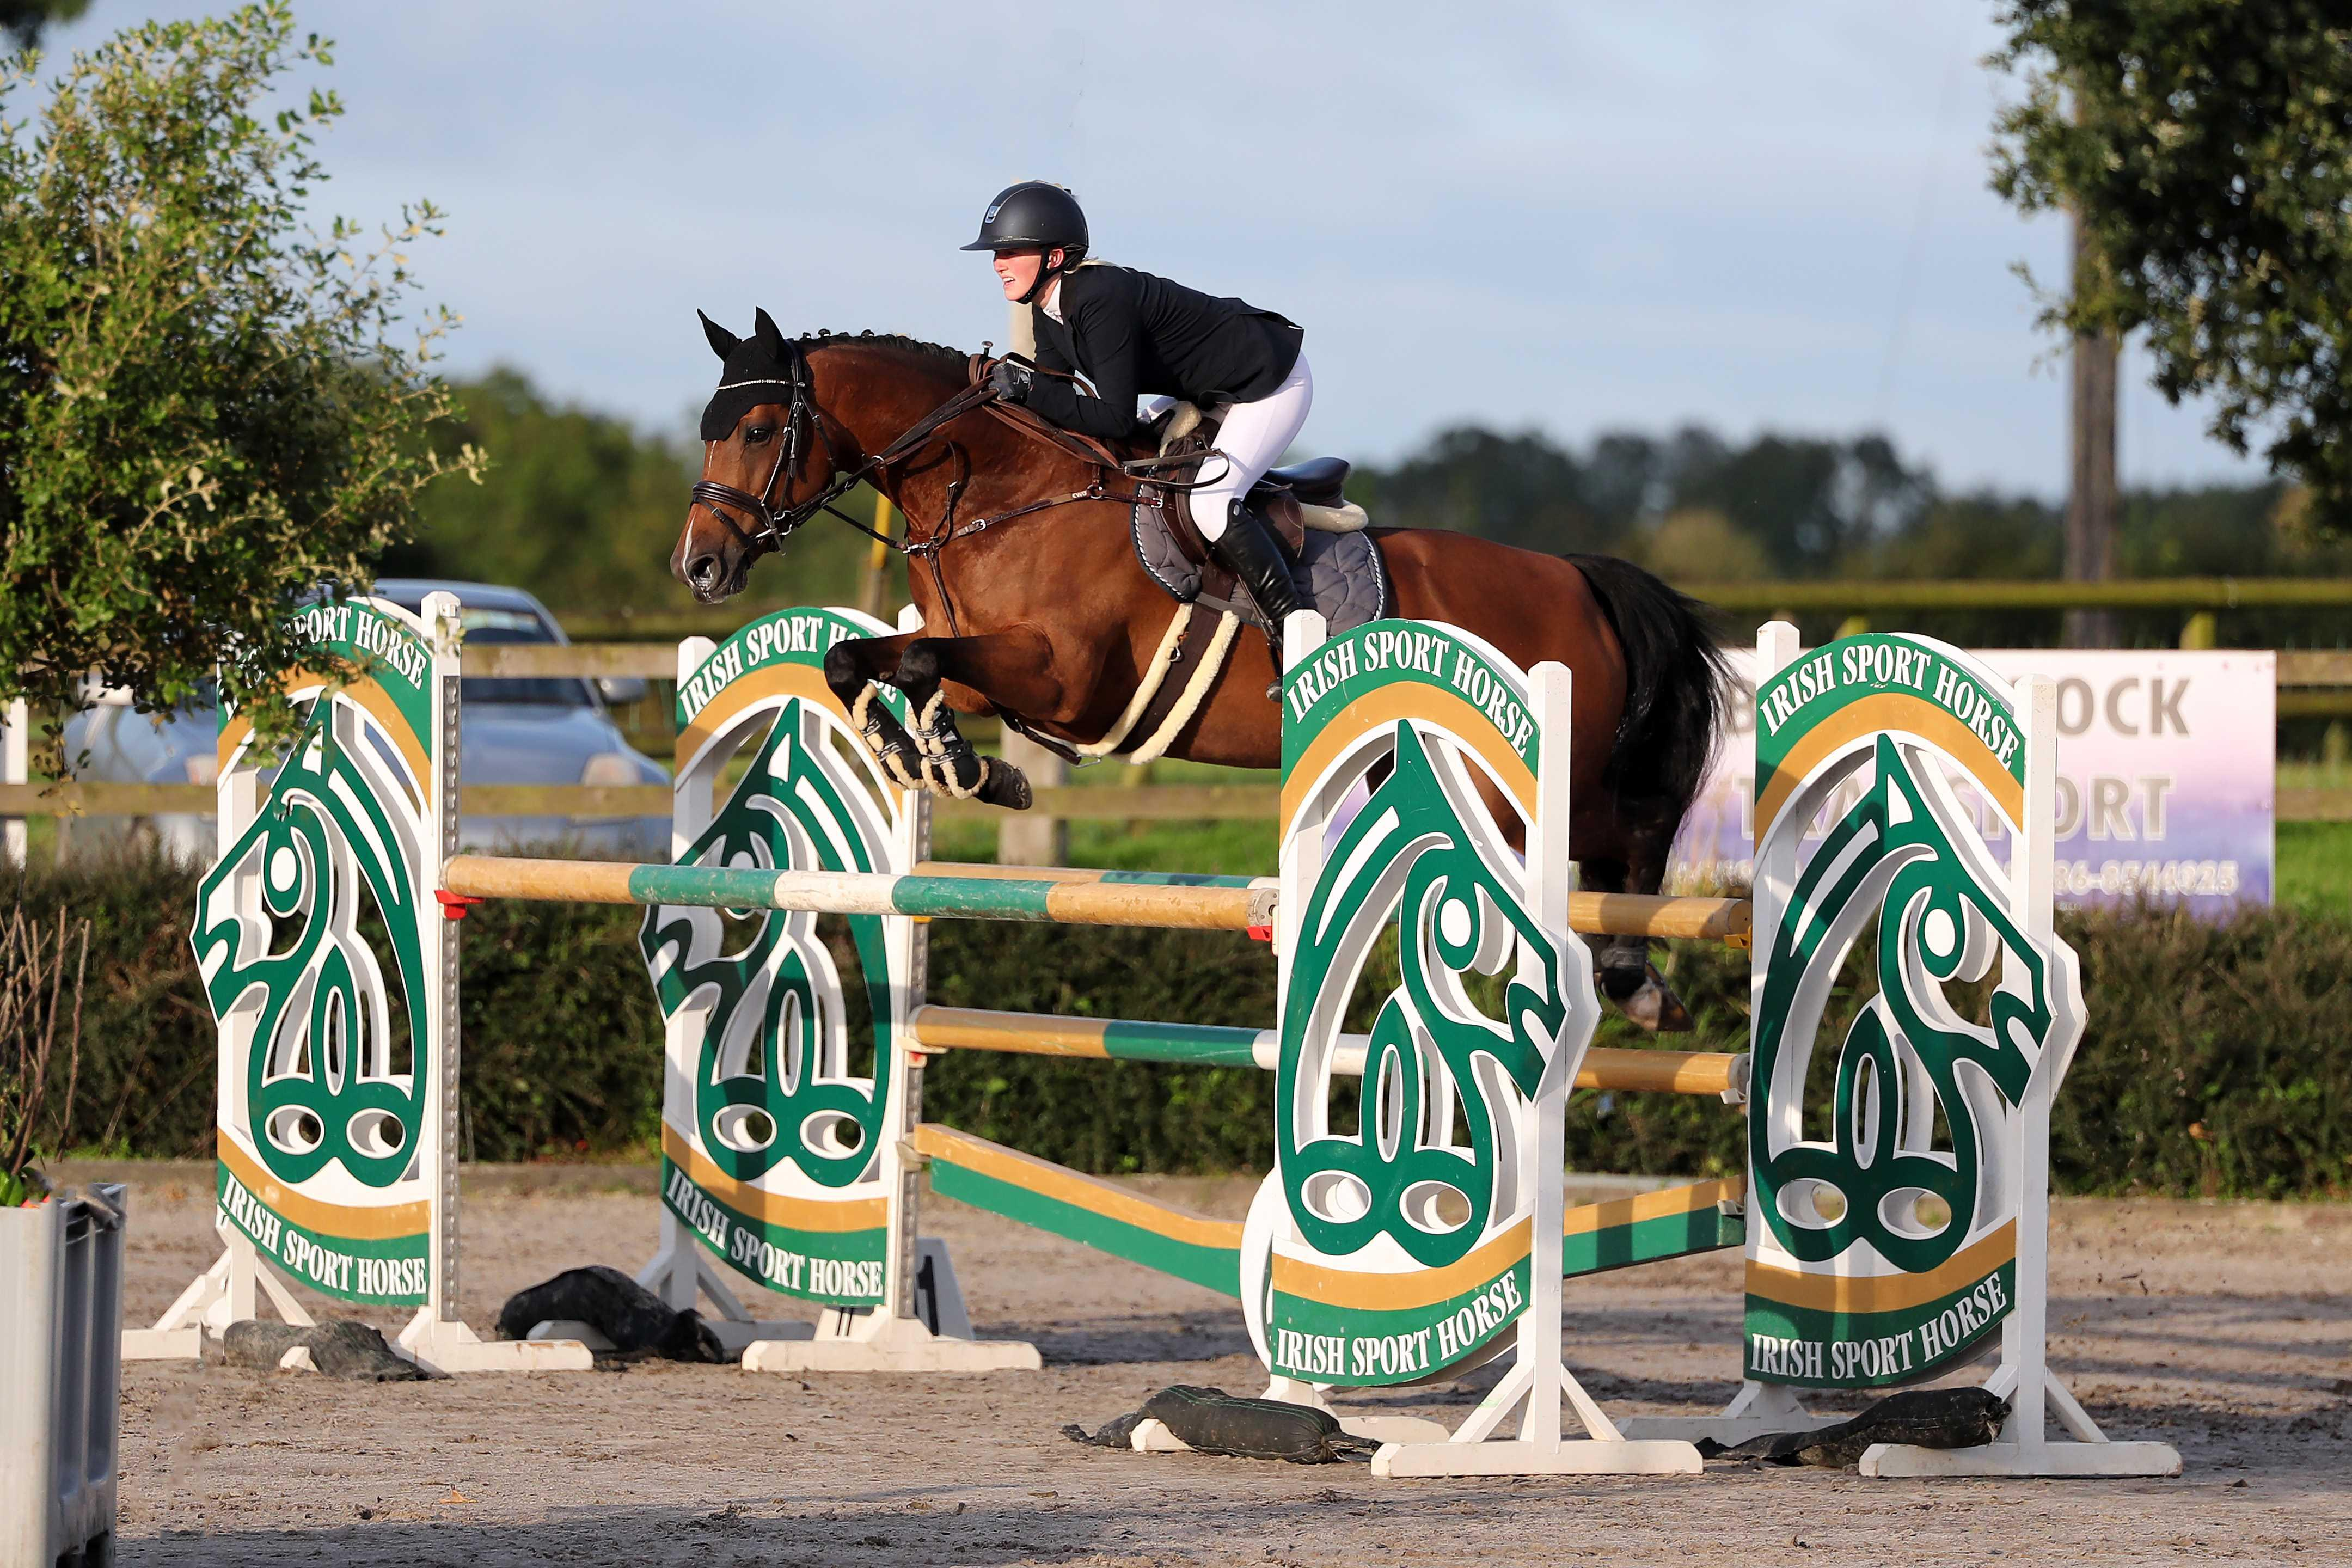 SHOW JUMPING: Queally shines with Nour Alain to capture win